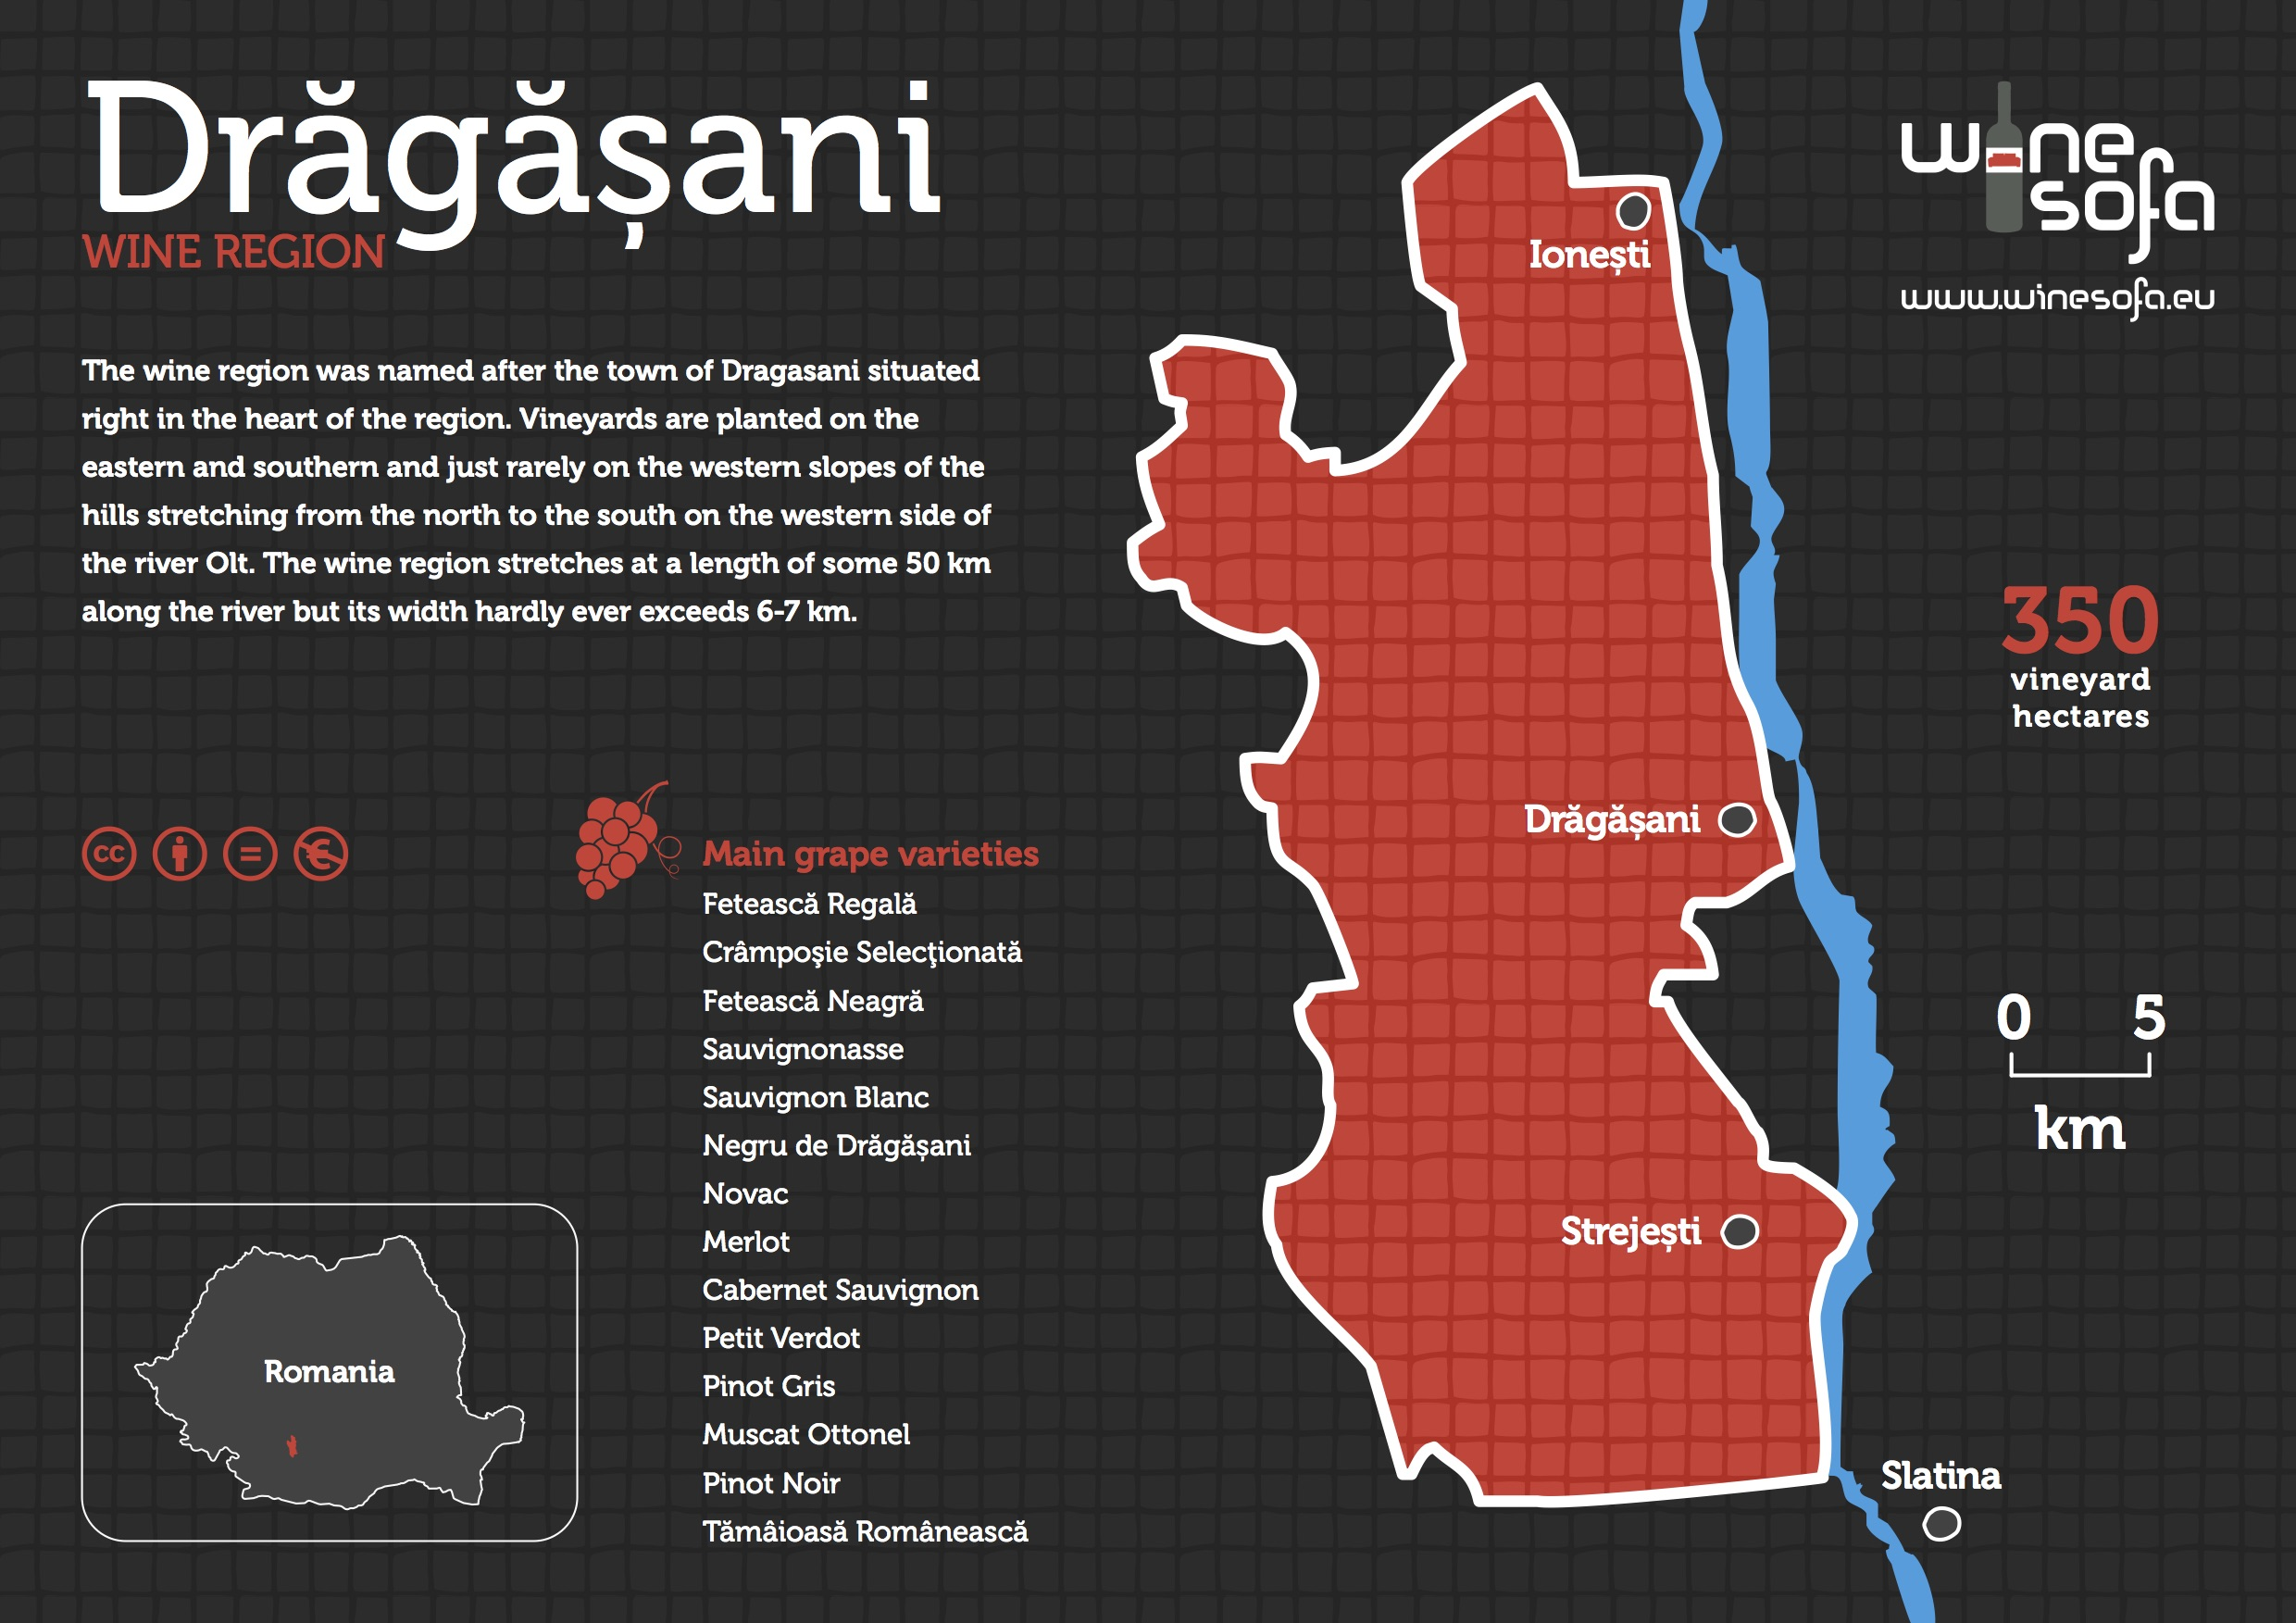 Dragasani info poster by WineSofa